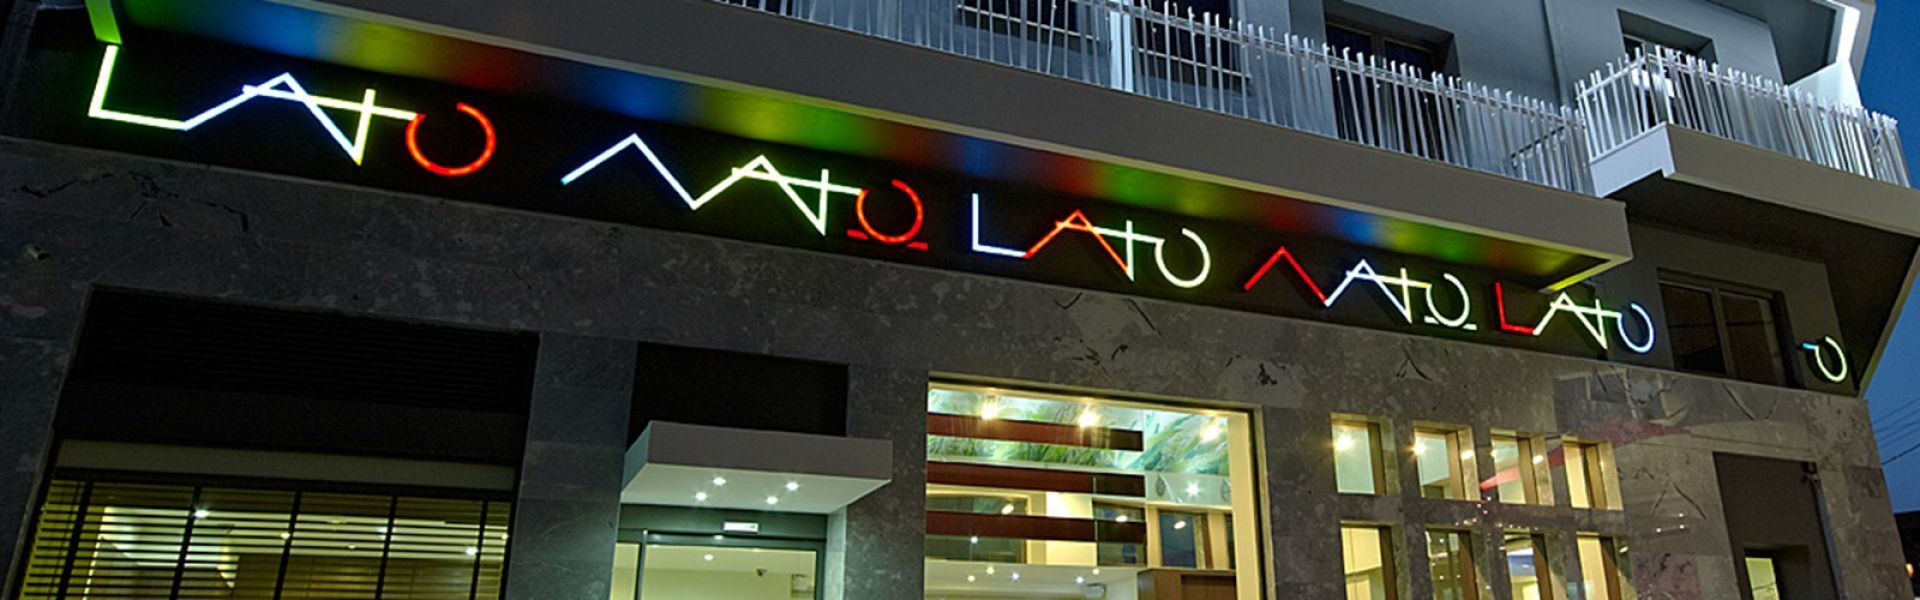 Lato Boutique Exterior